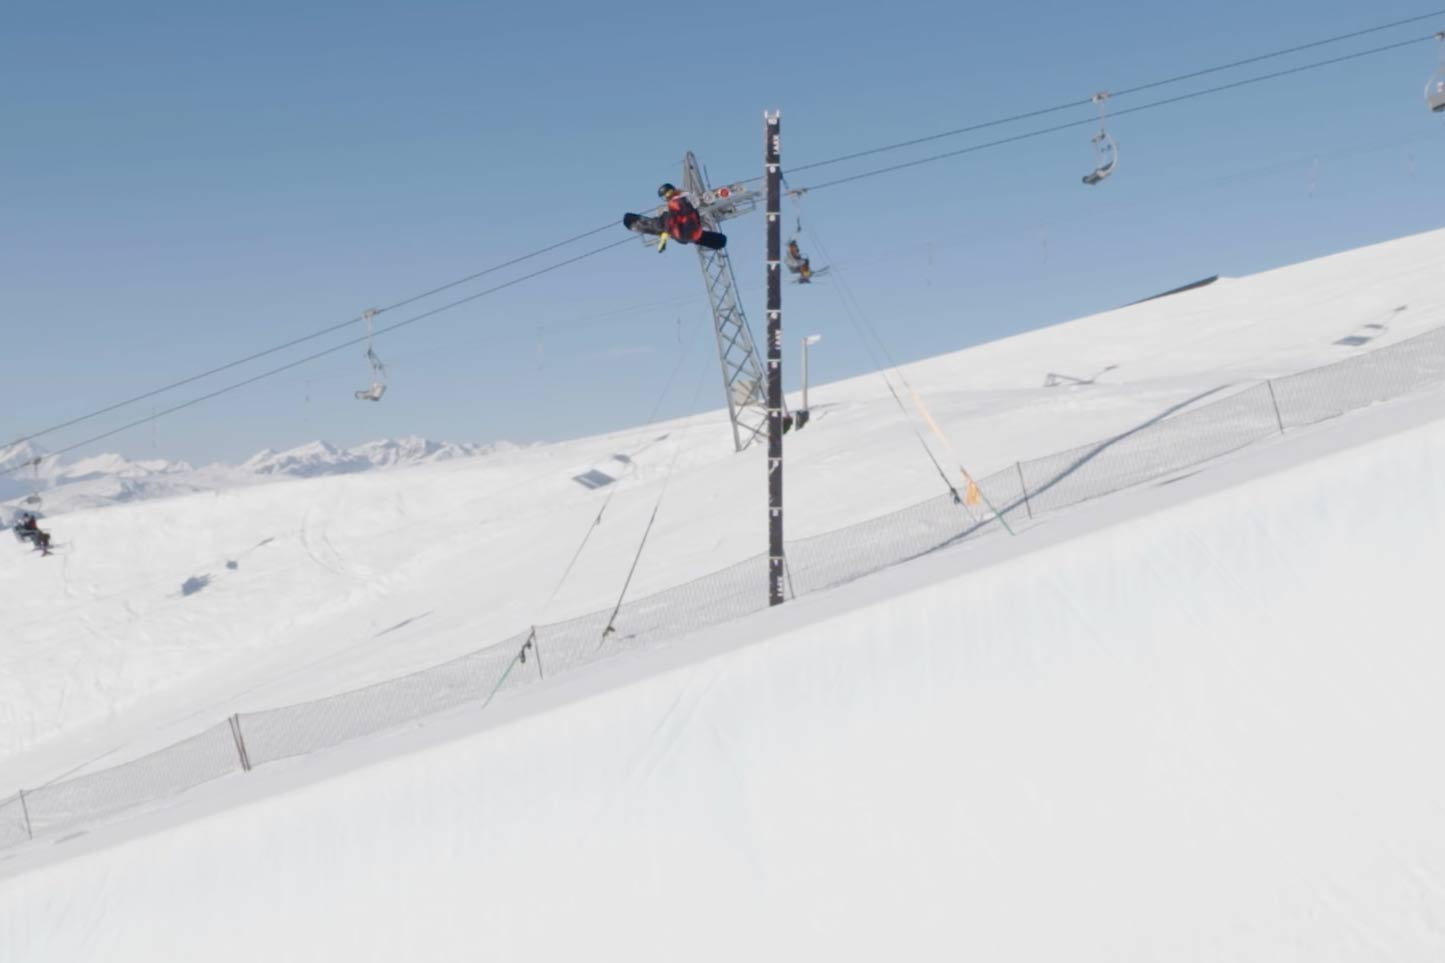 The 16-year-old broke the world record for the highest jump on a snowboard in half a tube